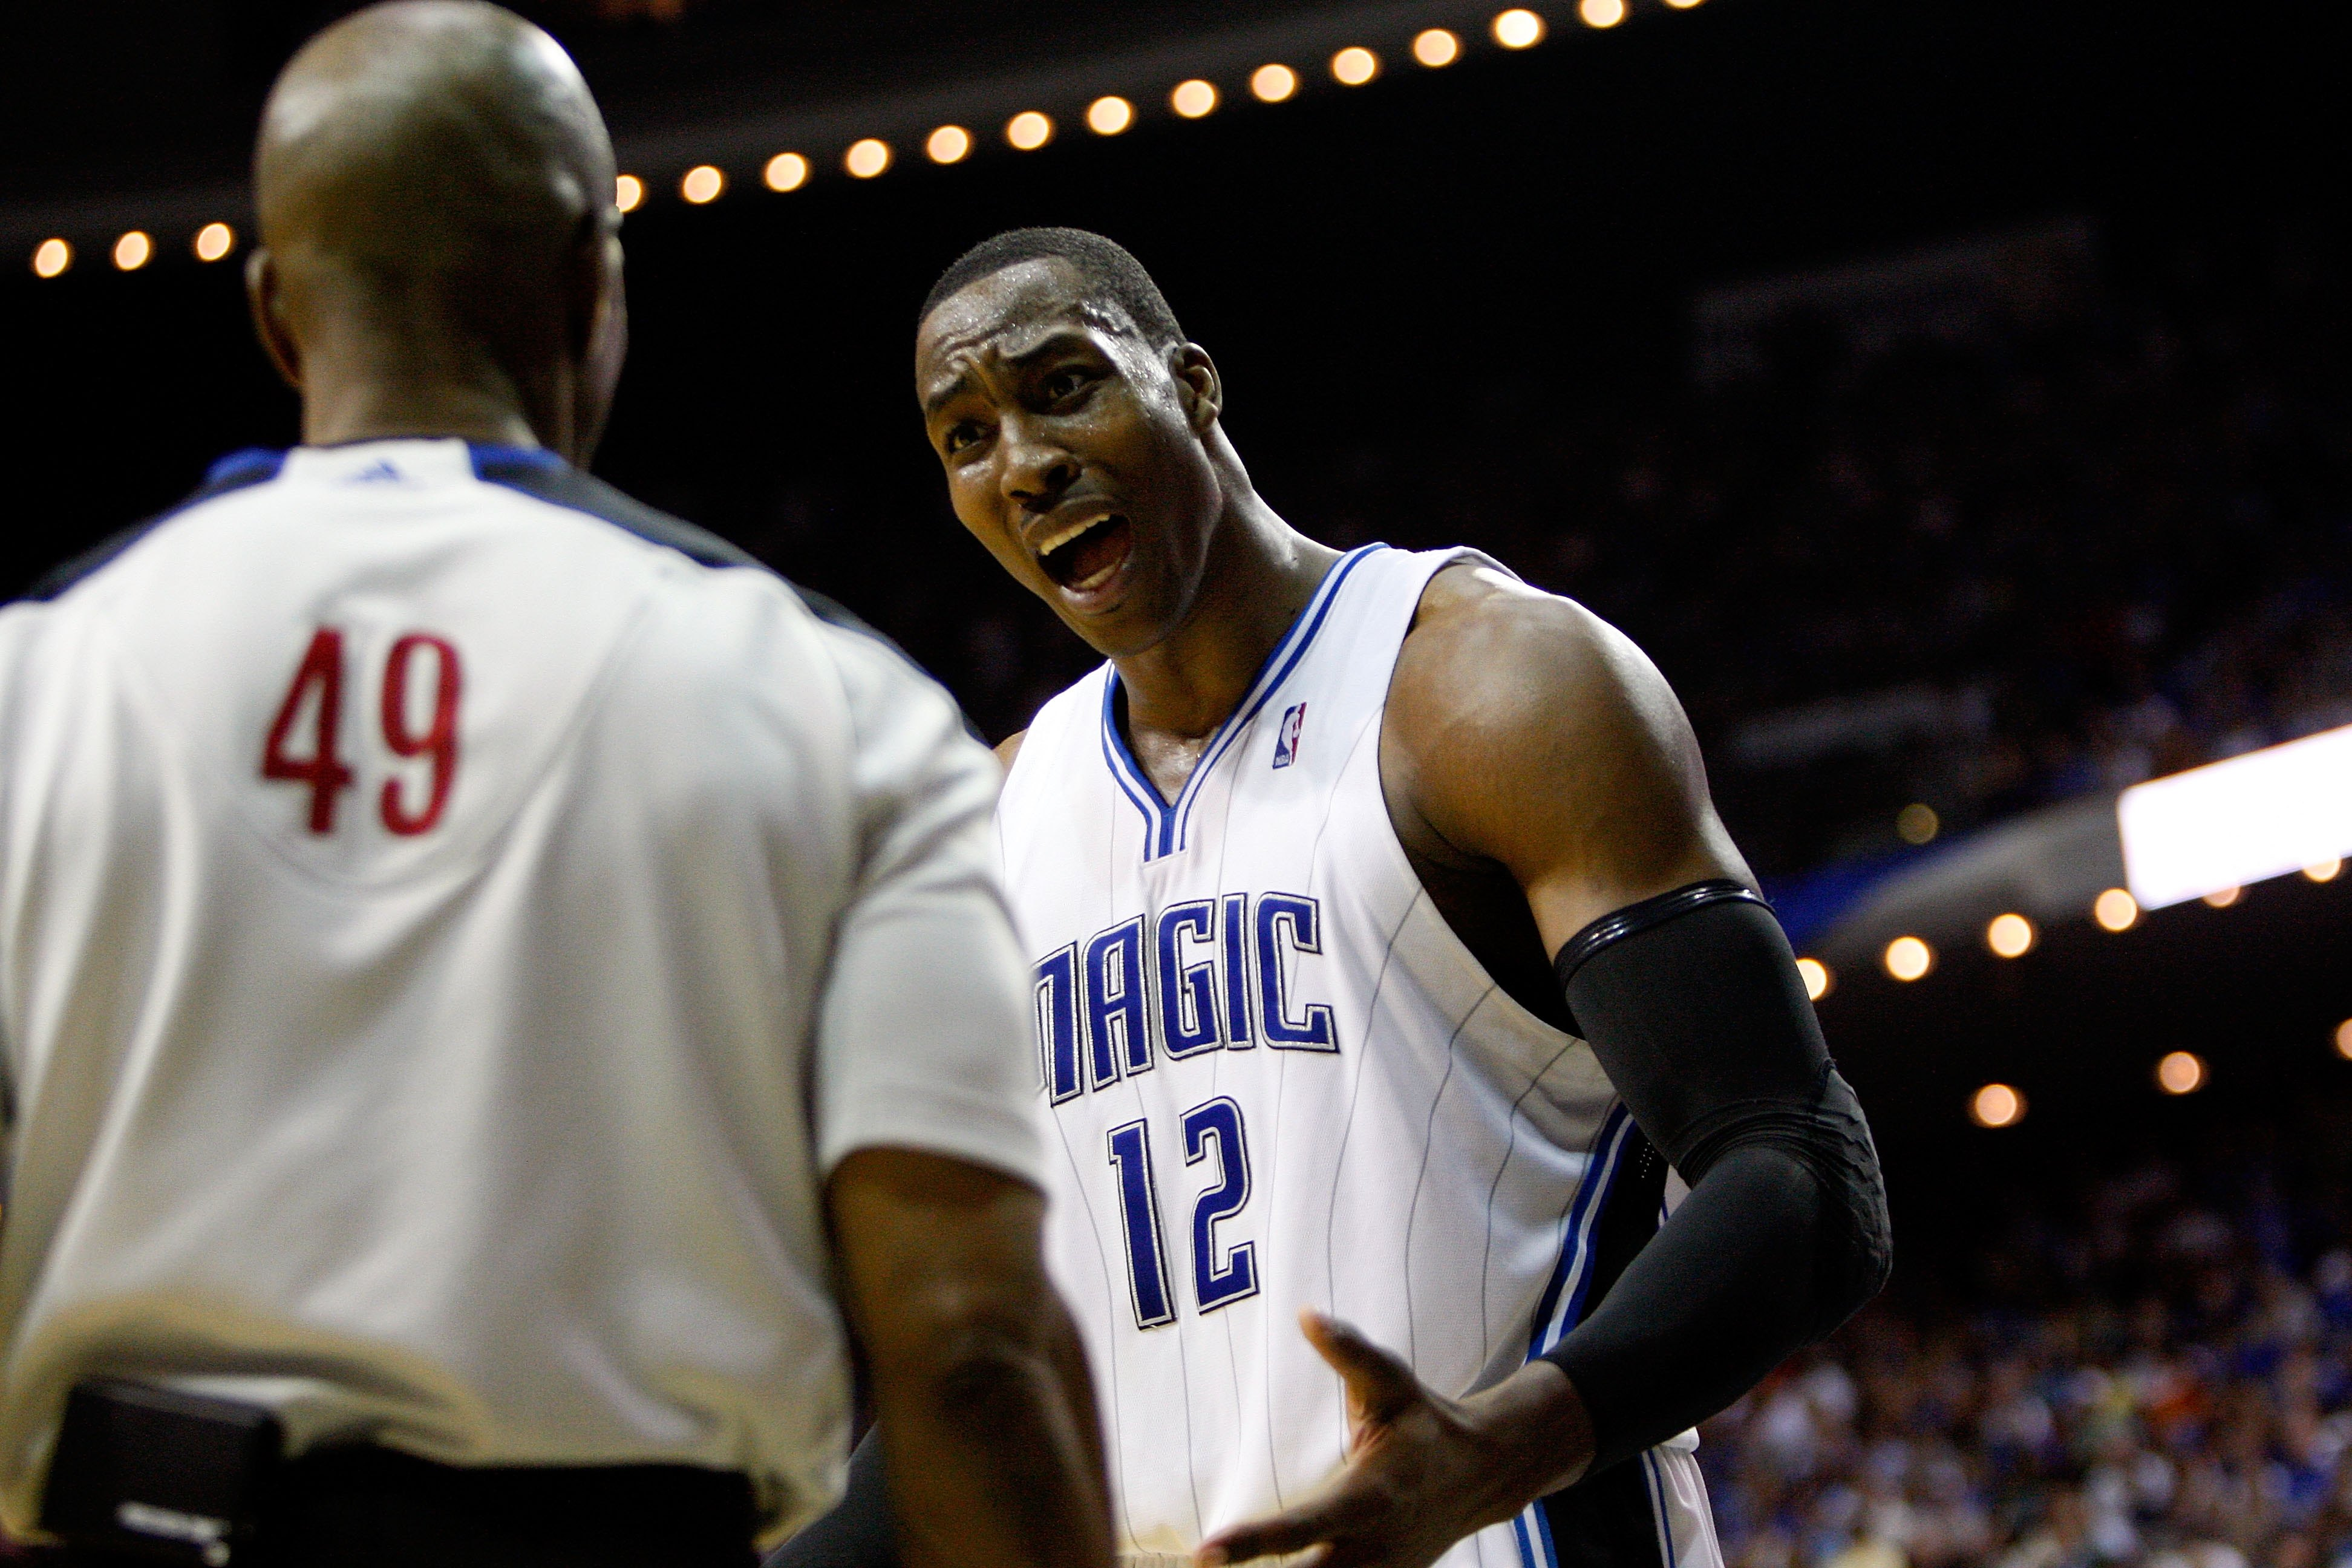 ORLANDO, FL - MAY 26:  Dwight Howard #12 of the Orlando Magic talks with referee Tom Washington against the Boston Celtics in Game Five of the Eastern Conference Finals during the 2010 NBA Playoffs at Amway Arena on May 26, 2010 in Orlando, Florida.  NOTE